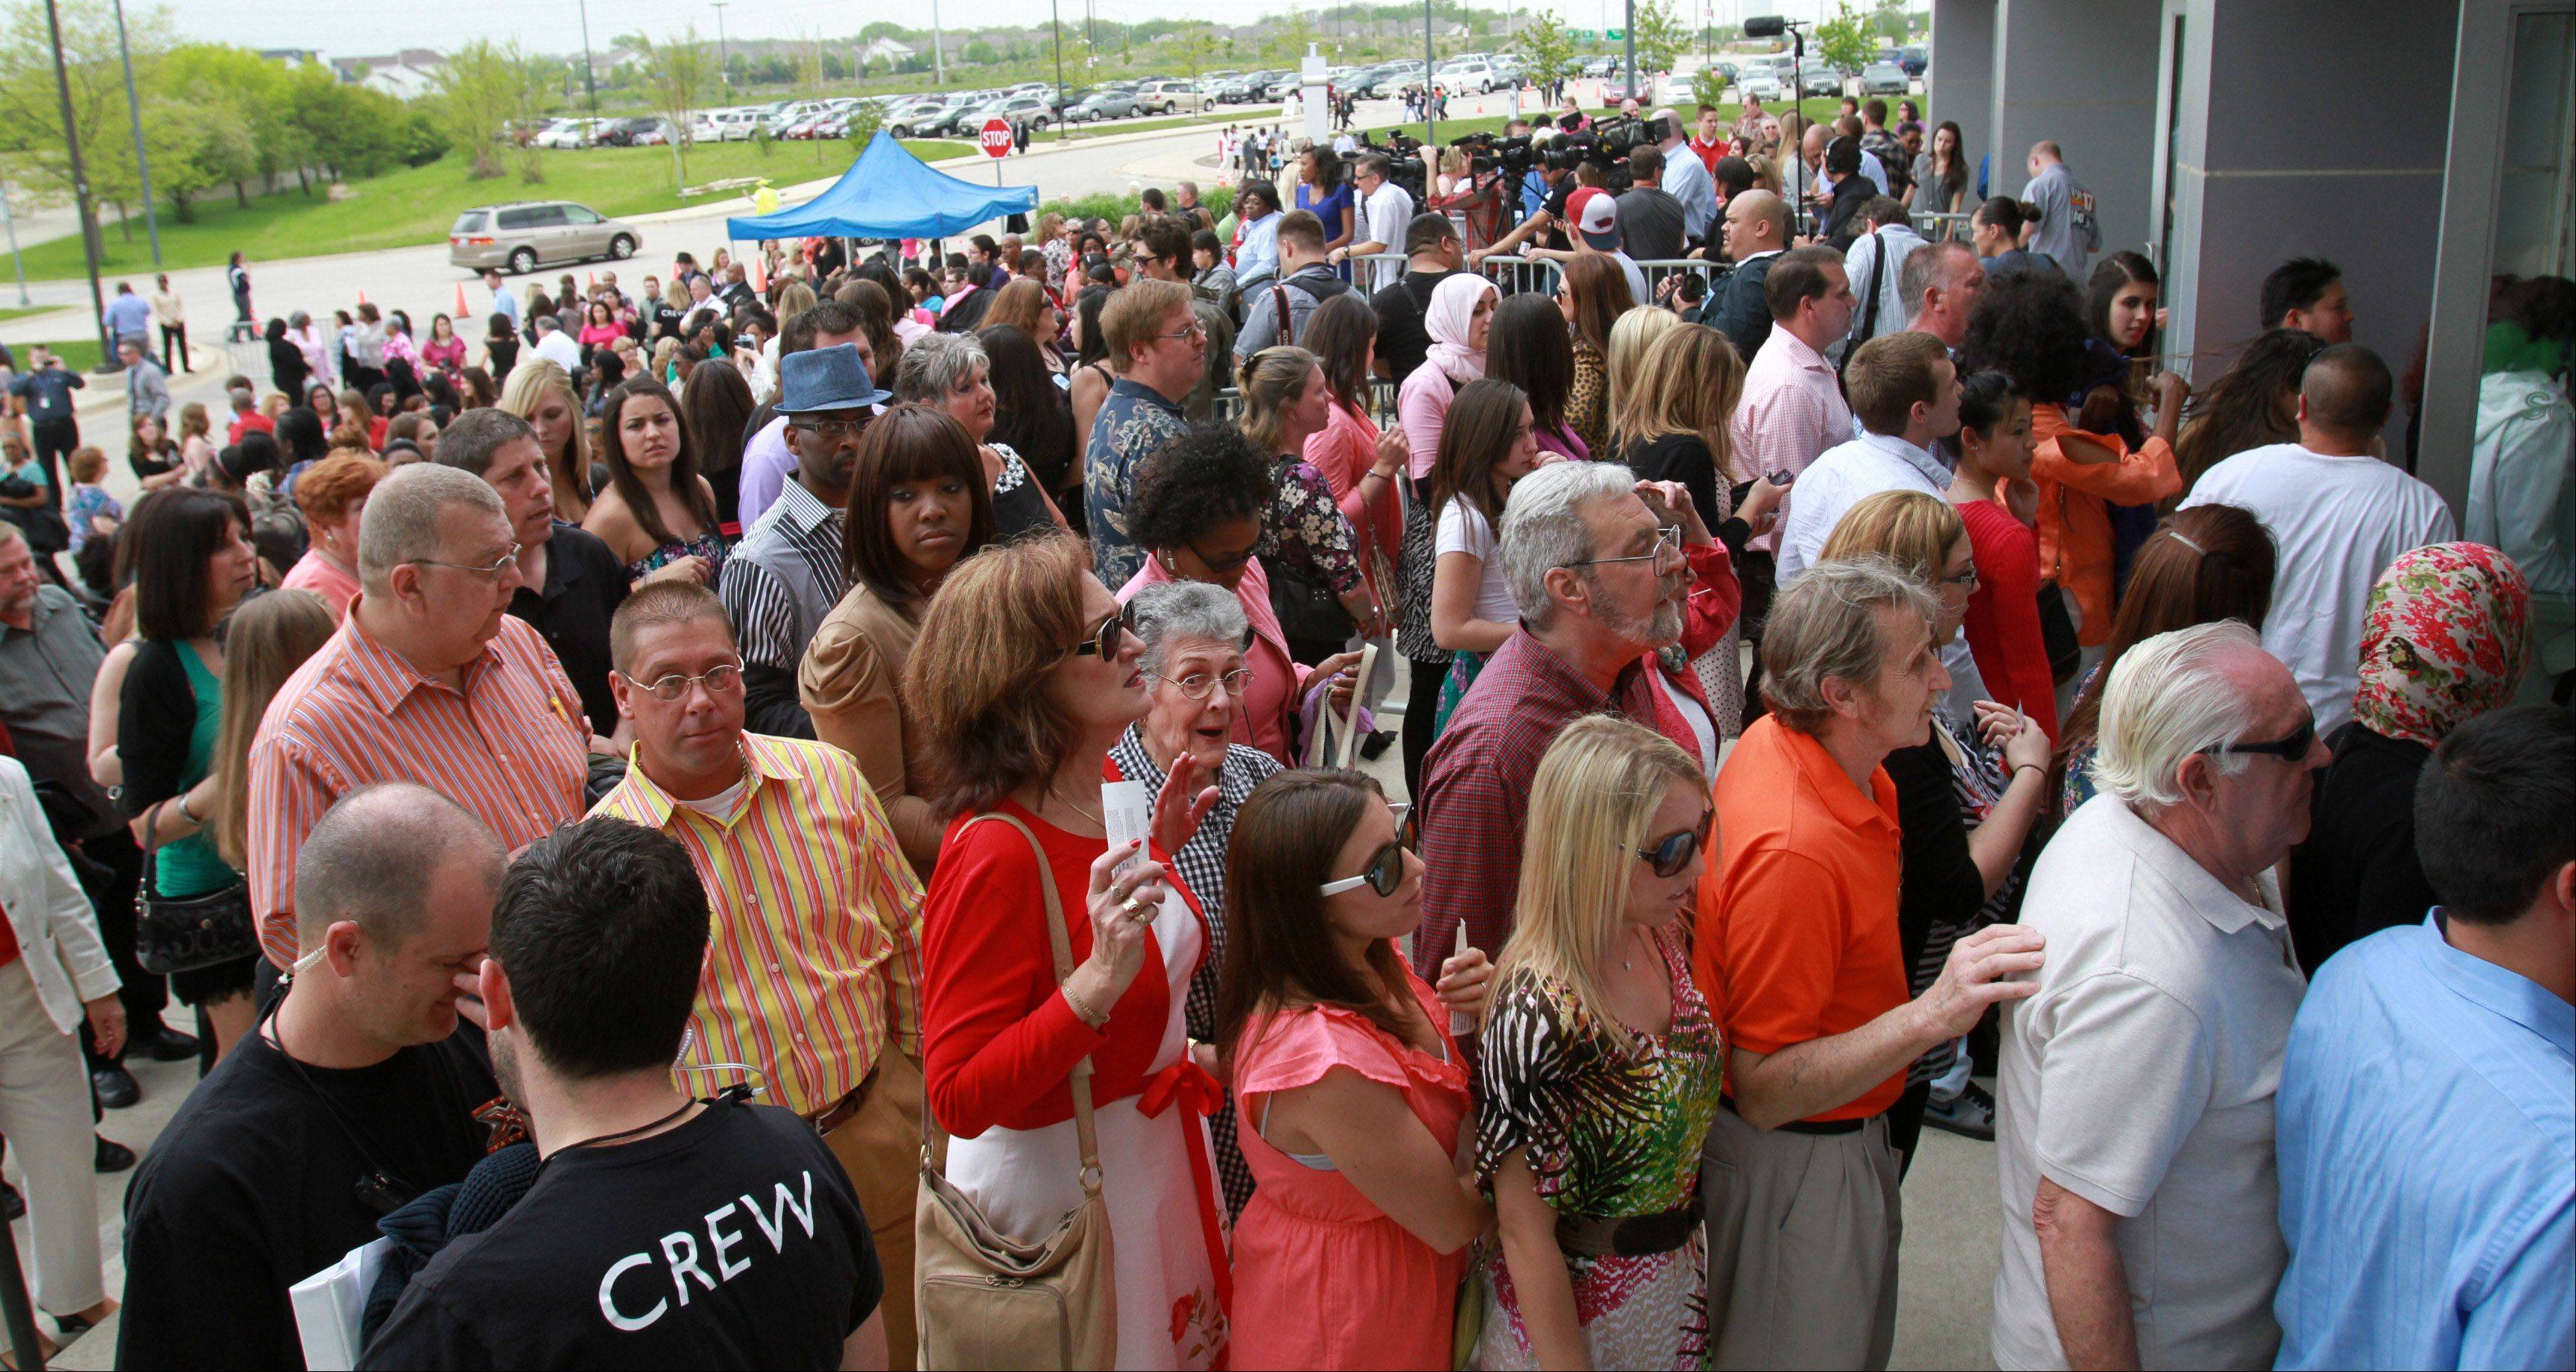 The X Factor fans line up outside the Sears Centre in Hoffman Estates for taping of the judges round for on Thursday, May 19th.